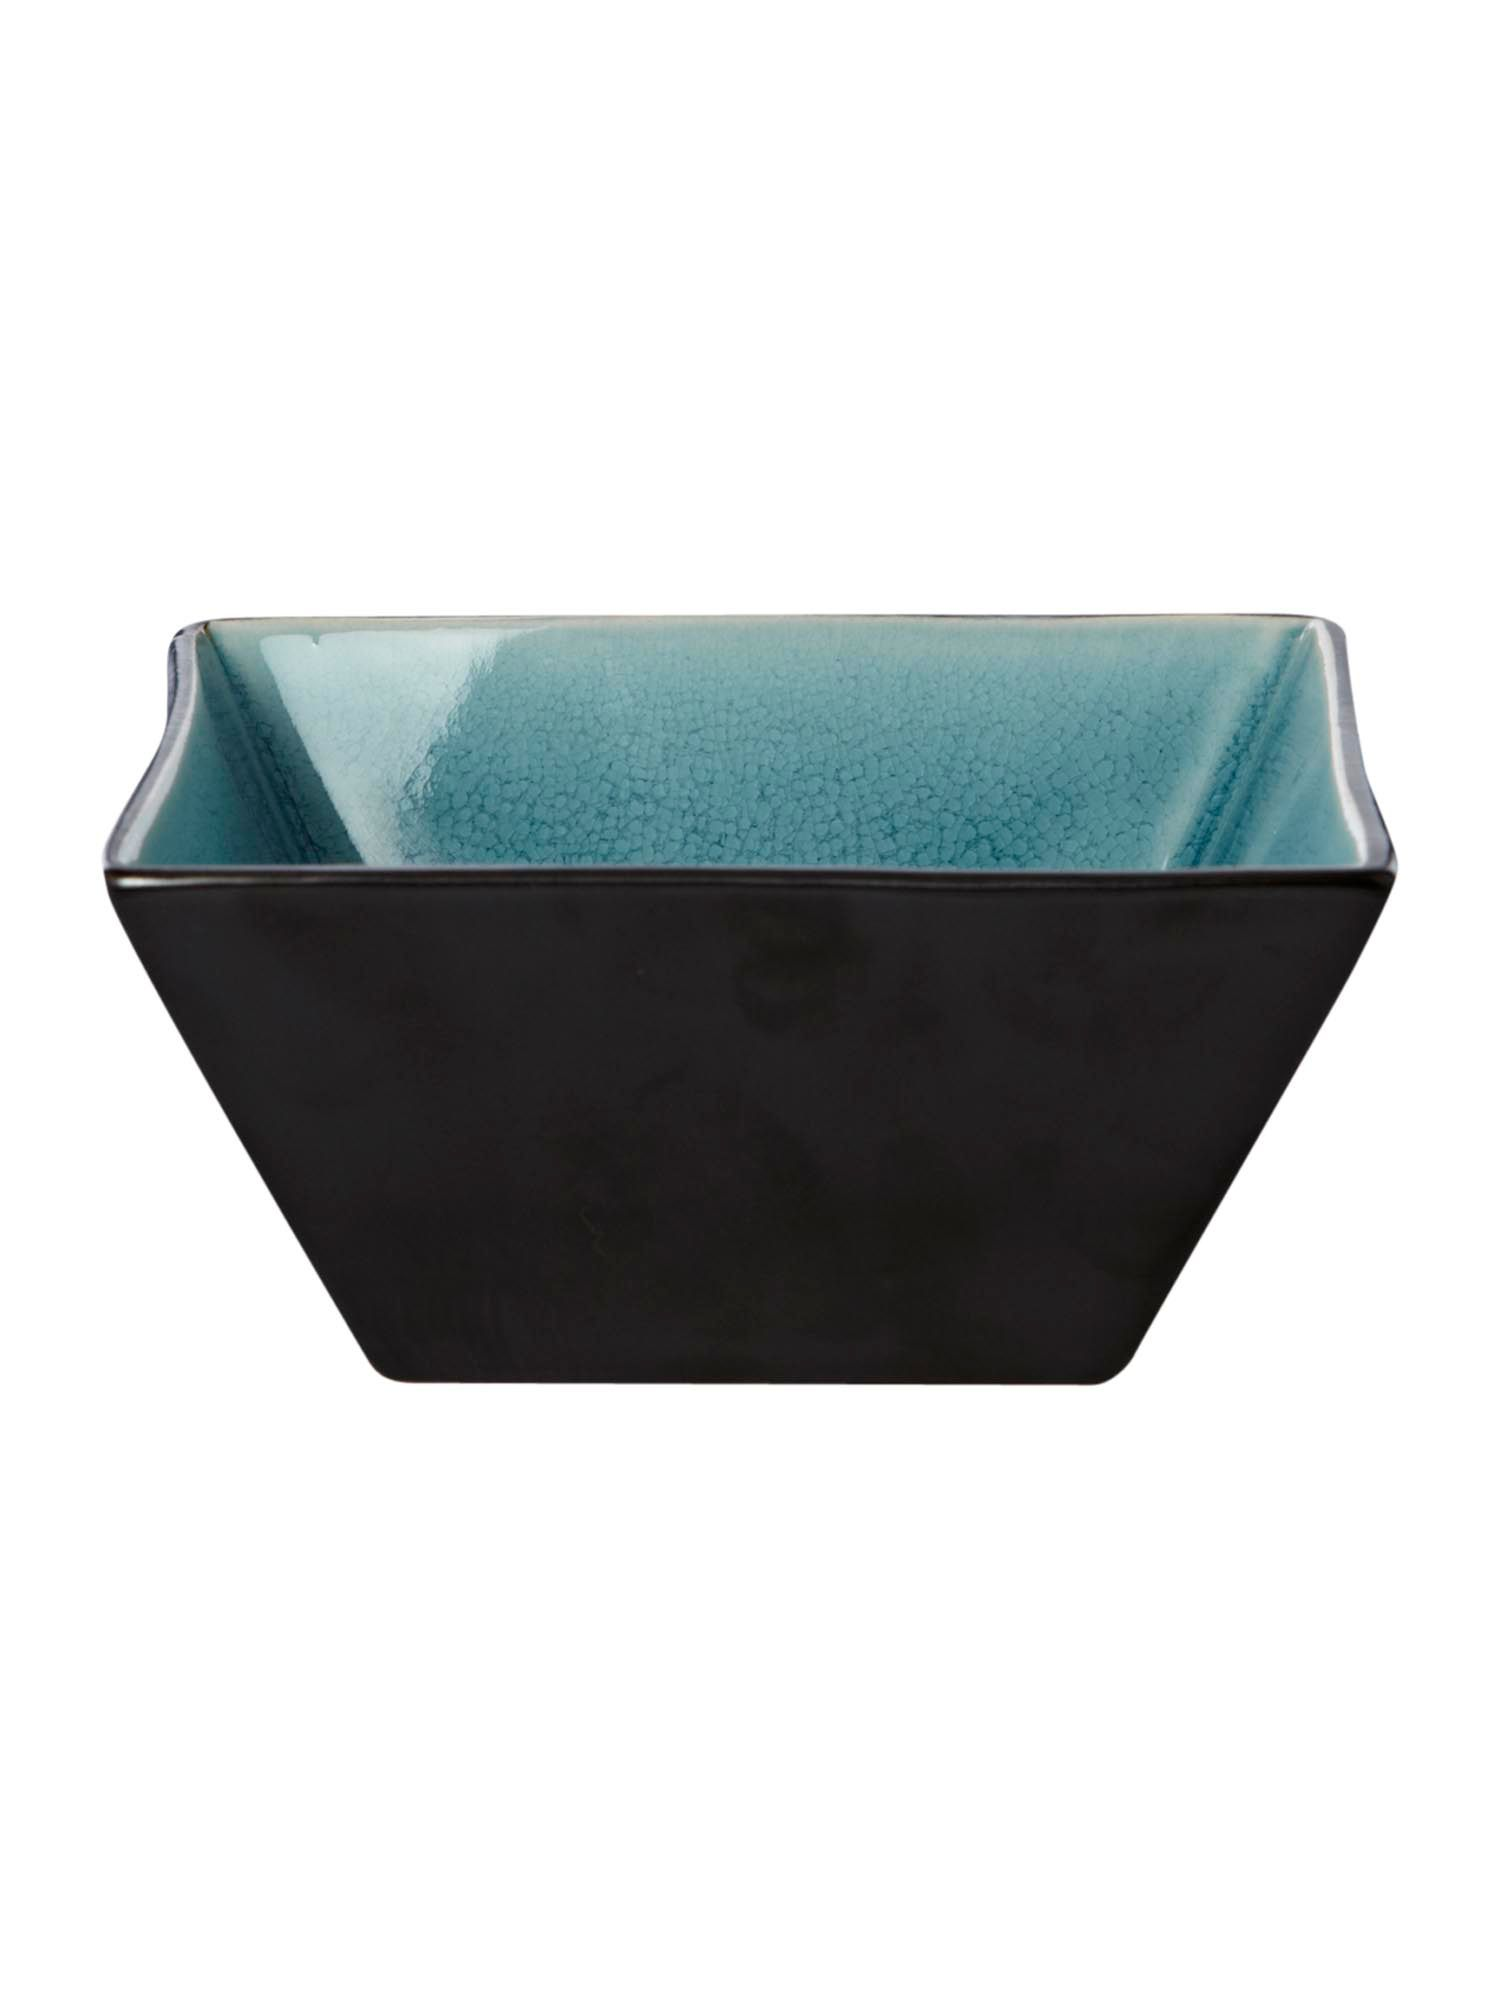 Zen blue square bowl large